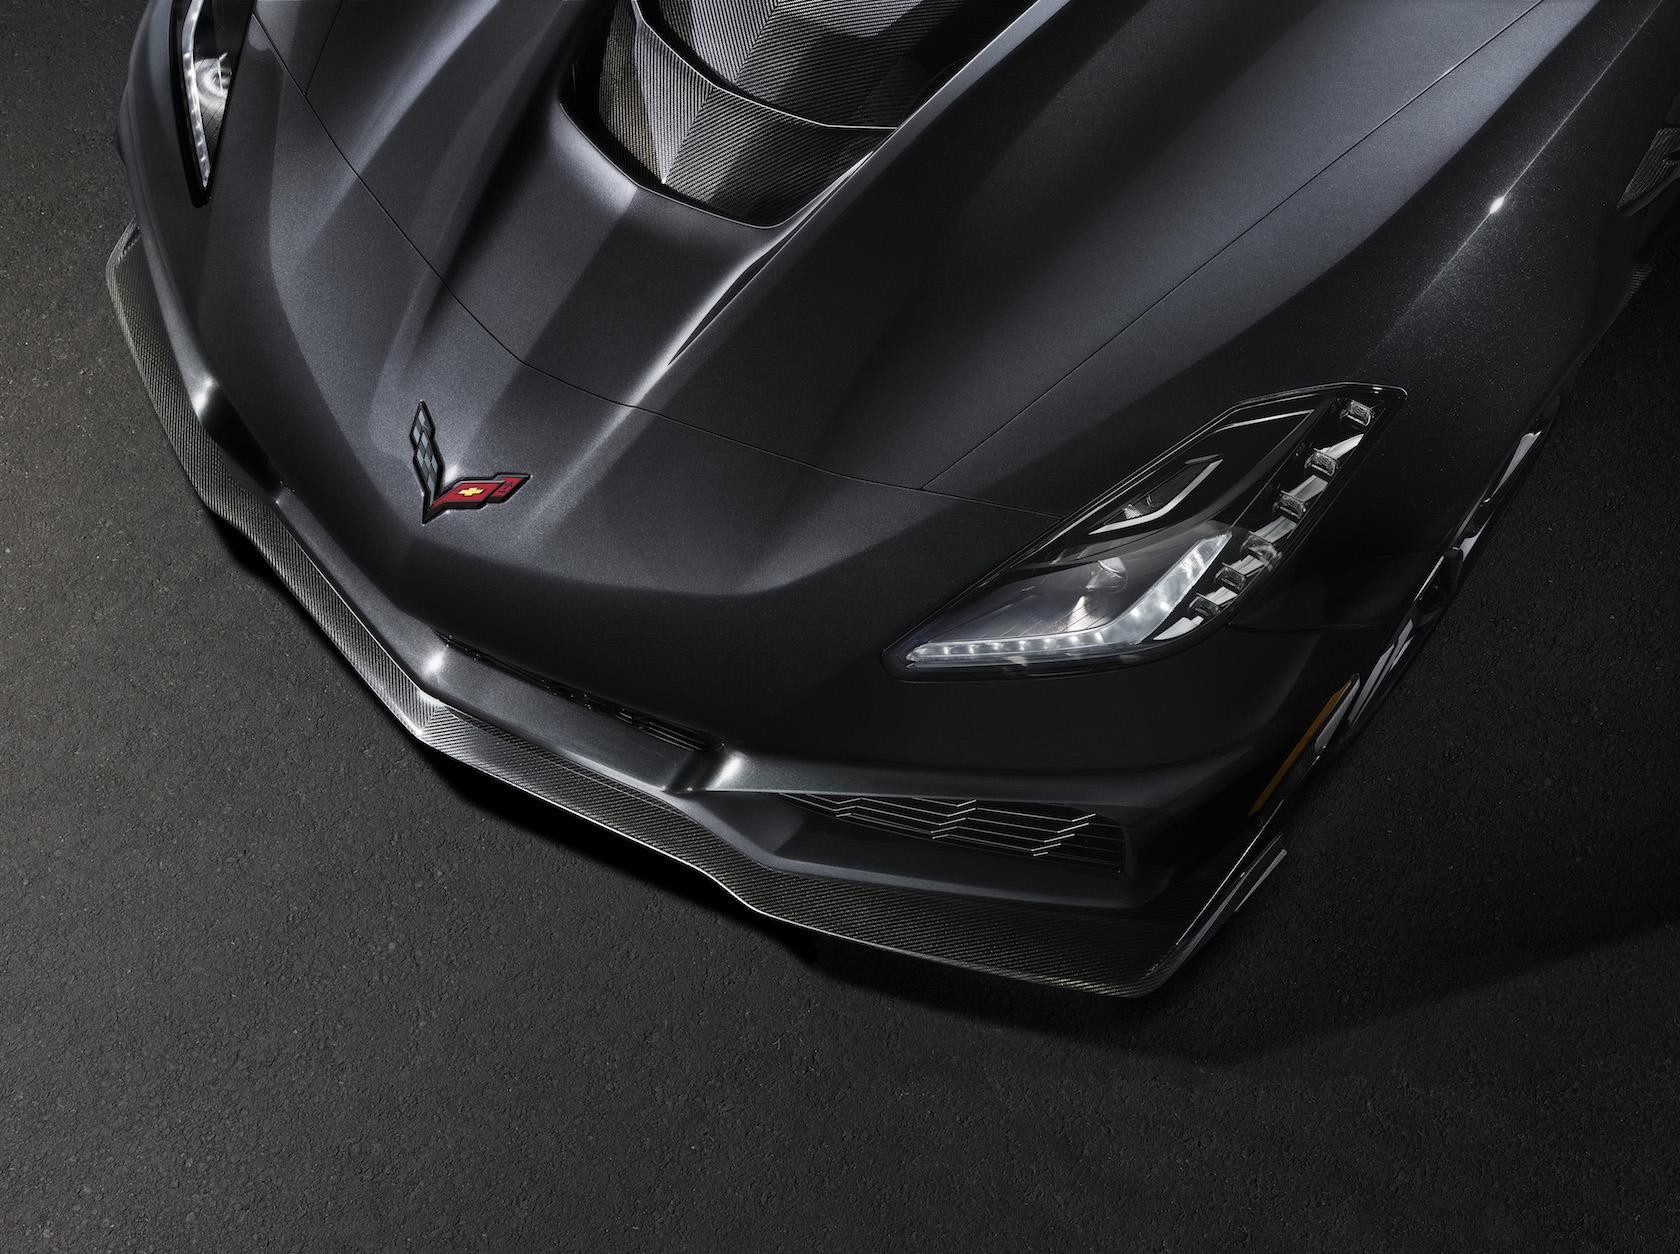 2019 Corvette ZR1: 5 fast facts about Chevy's new supercar